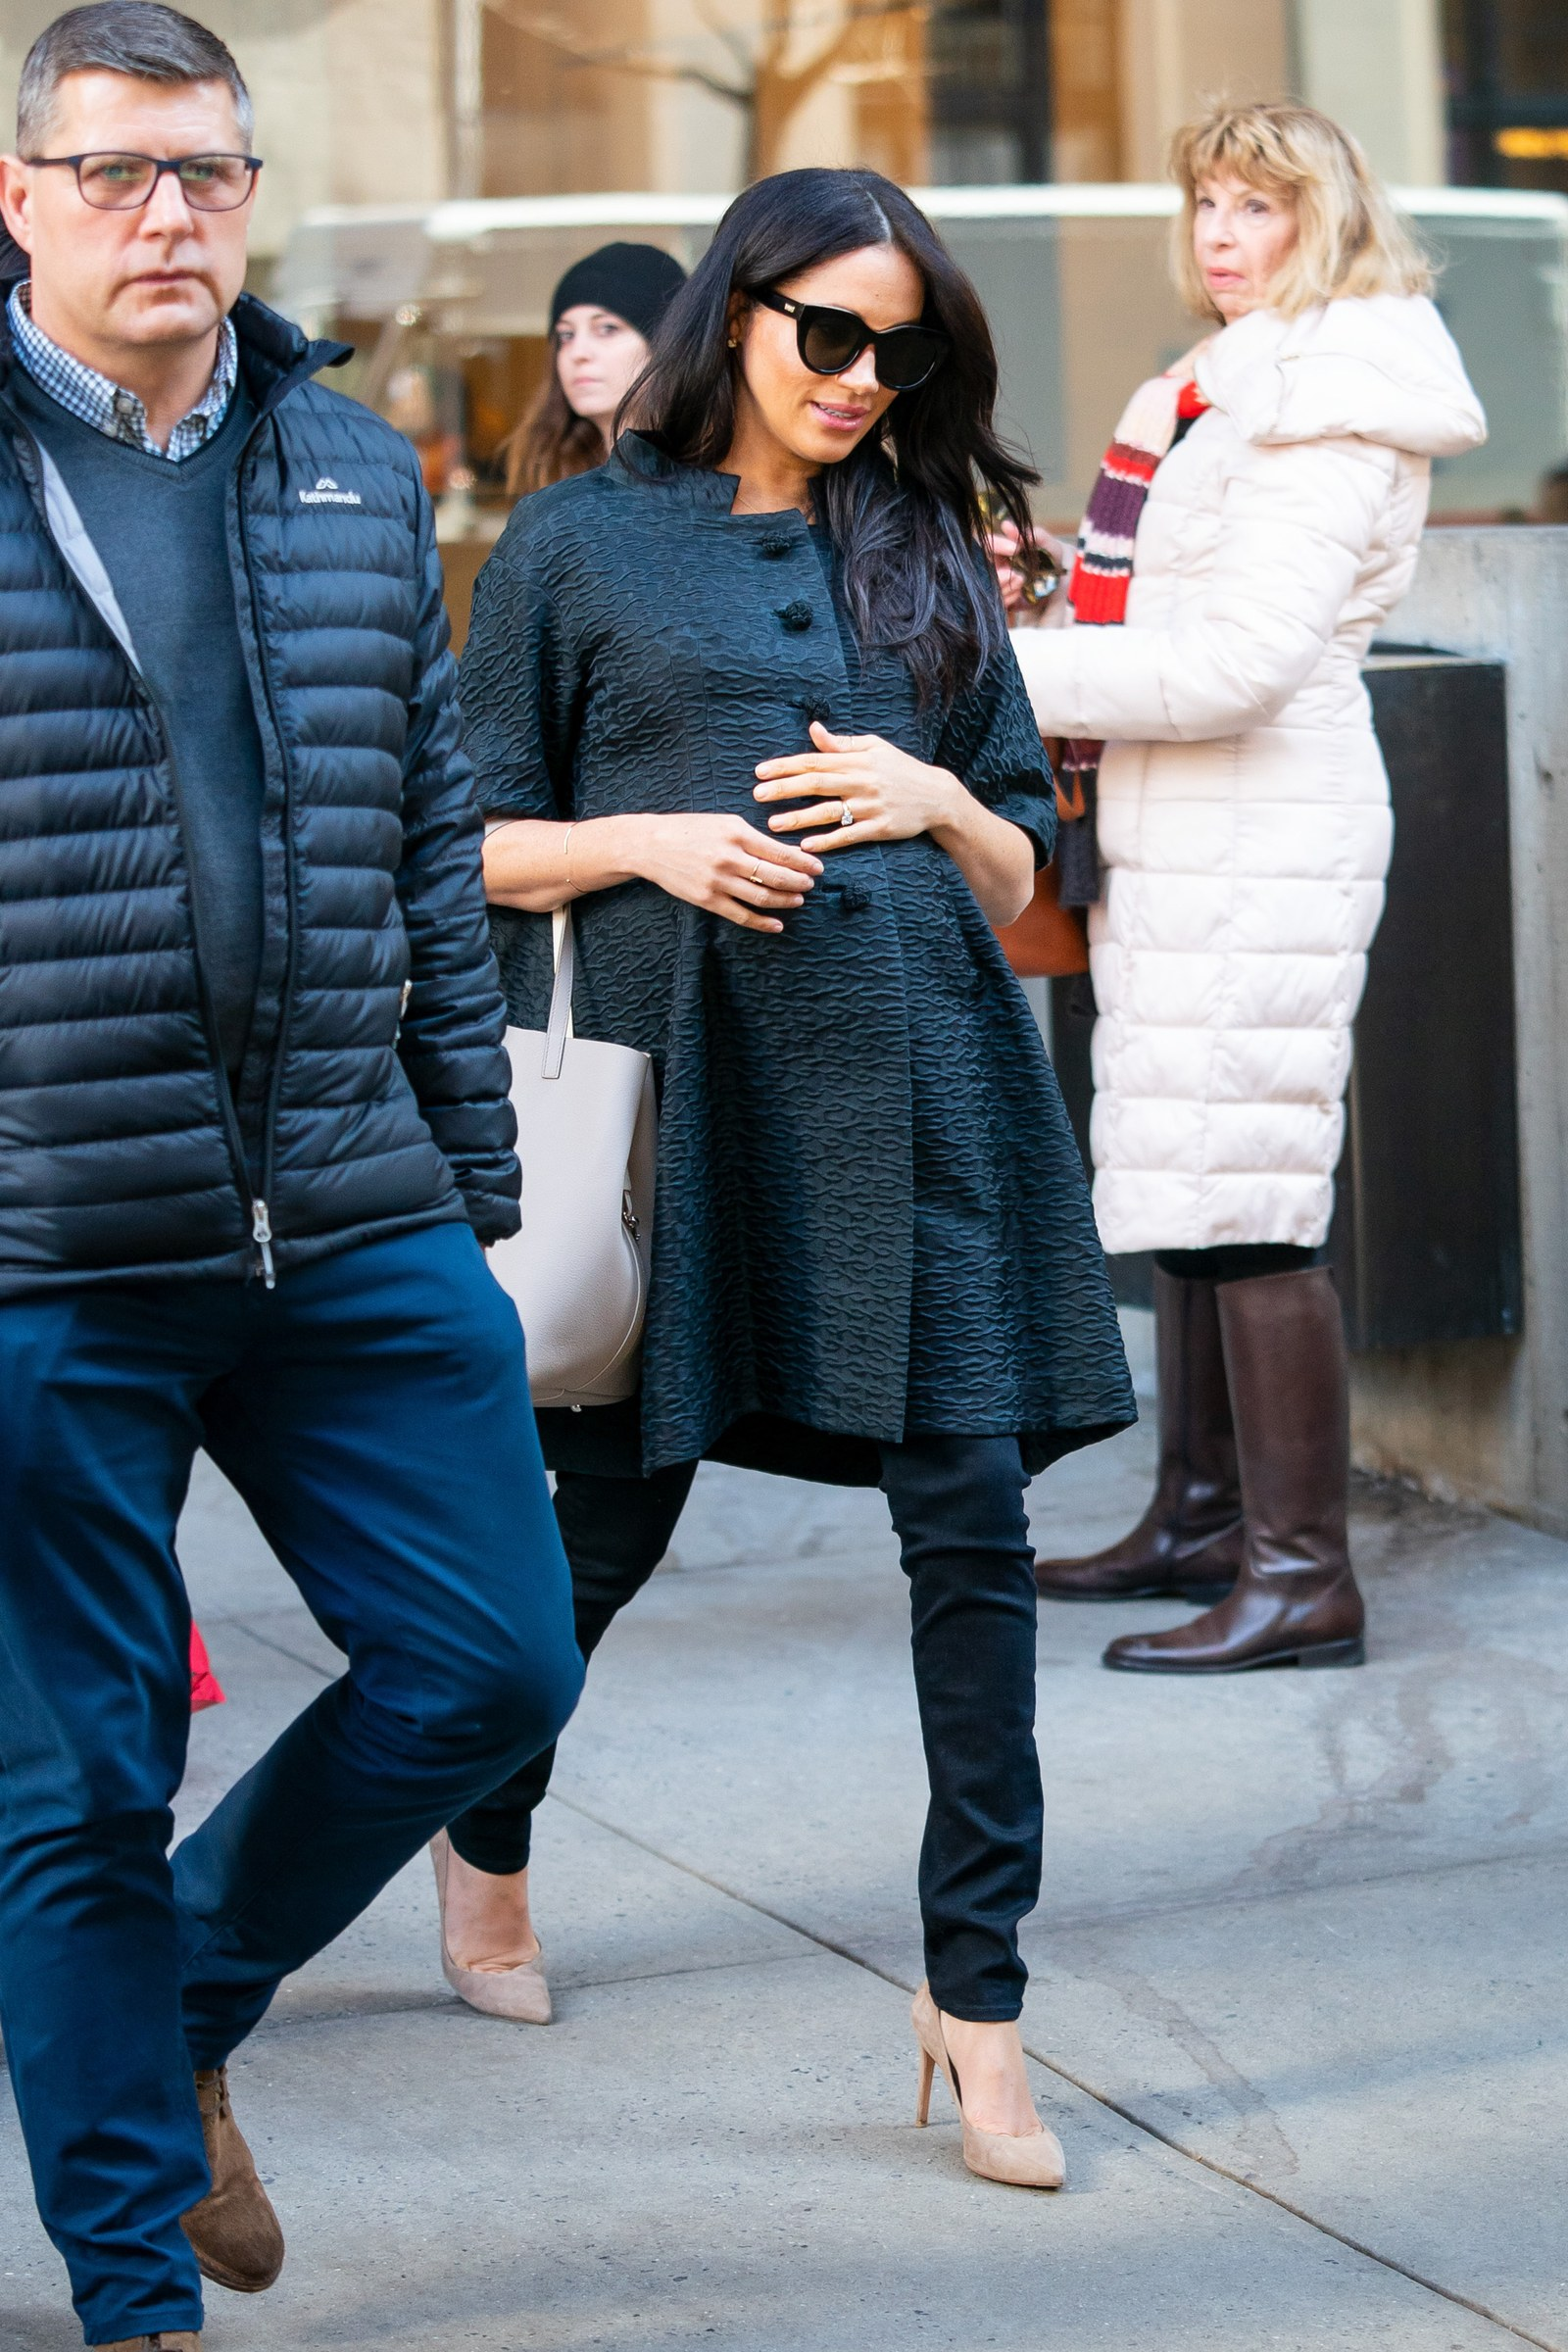 Meghan Markle arriving at her baby shower in New York City